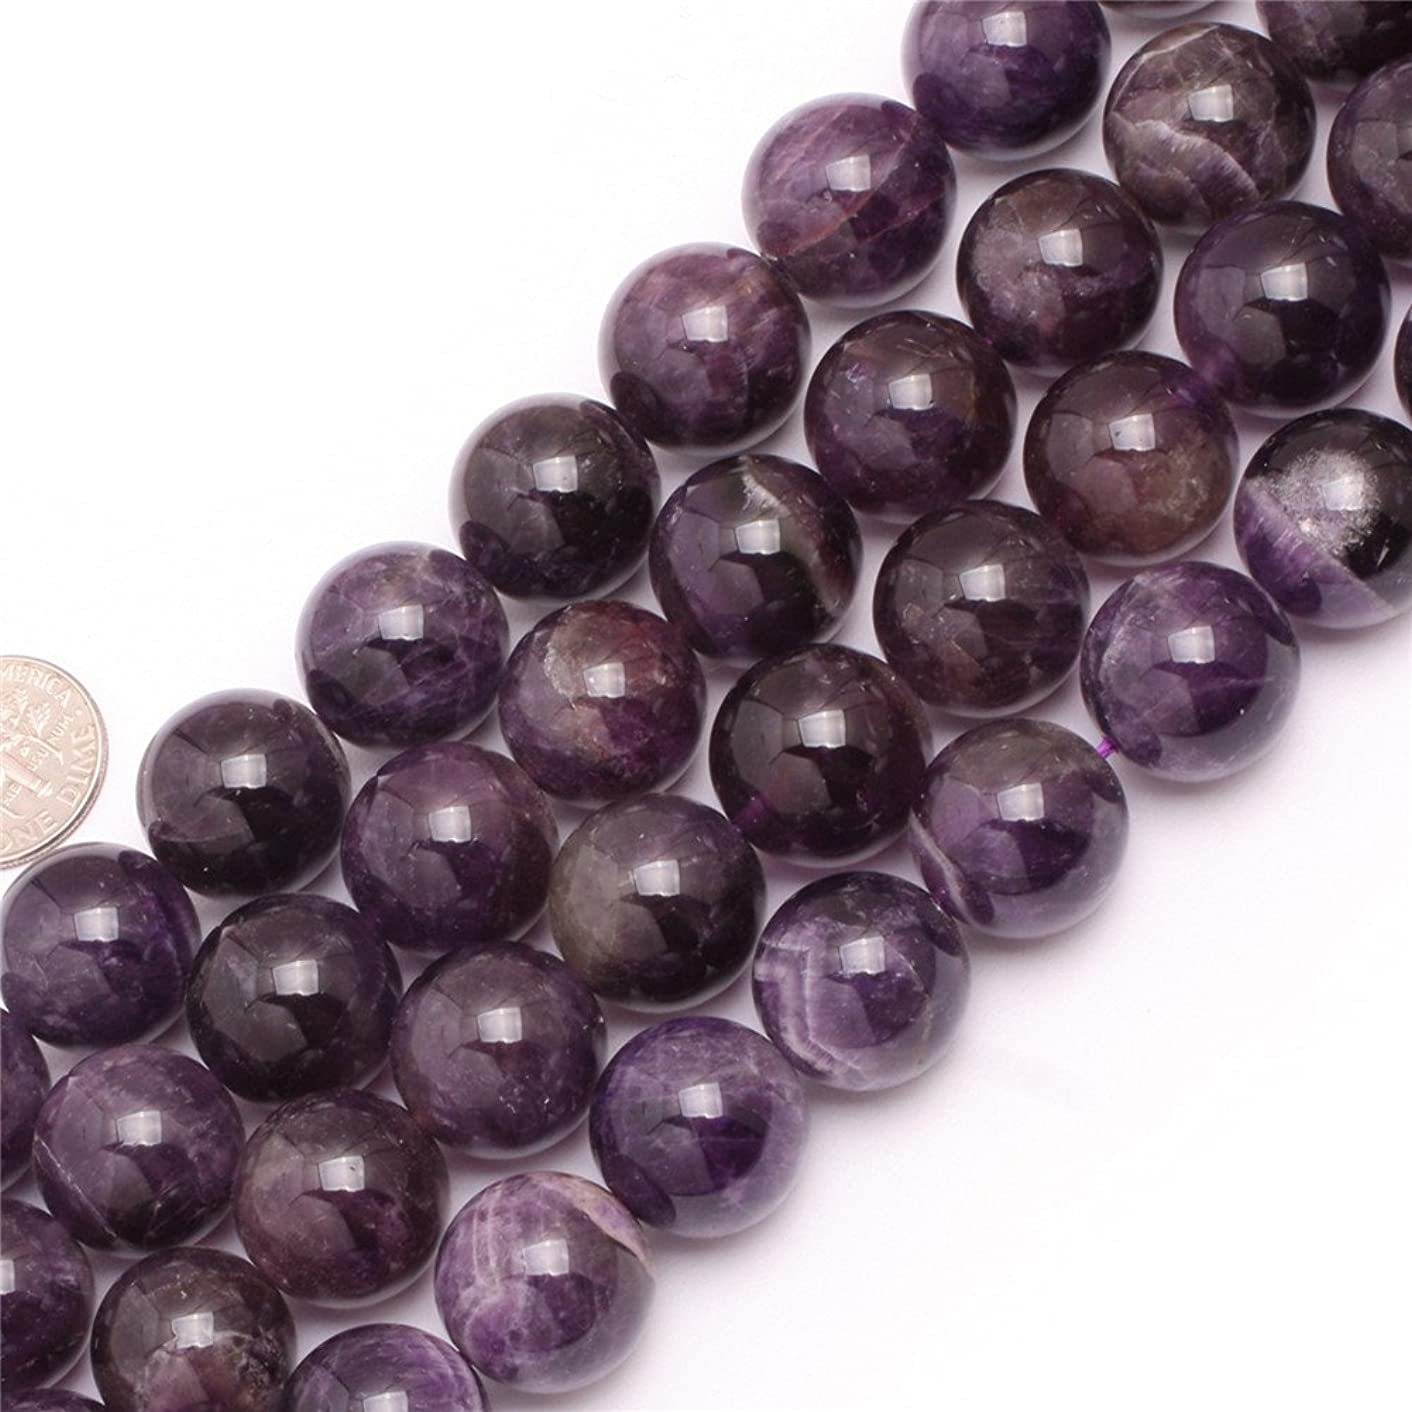 JOE FOREMAN 16mm Dream Lace Amethyst Semi Precious Gemstone Round Loose Beads for Jewelry Making DIY Handmade Craft Supplies 15